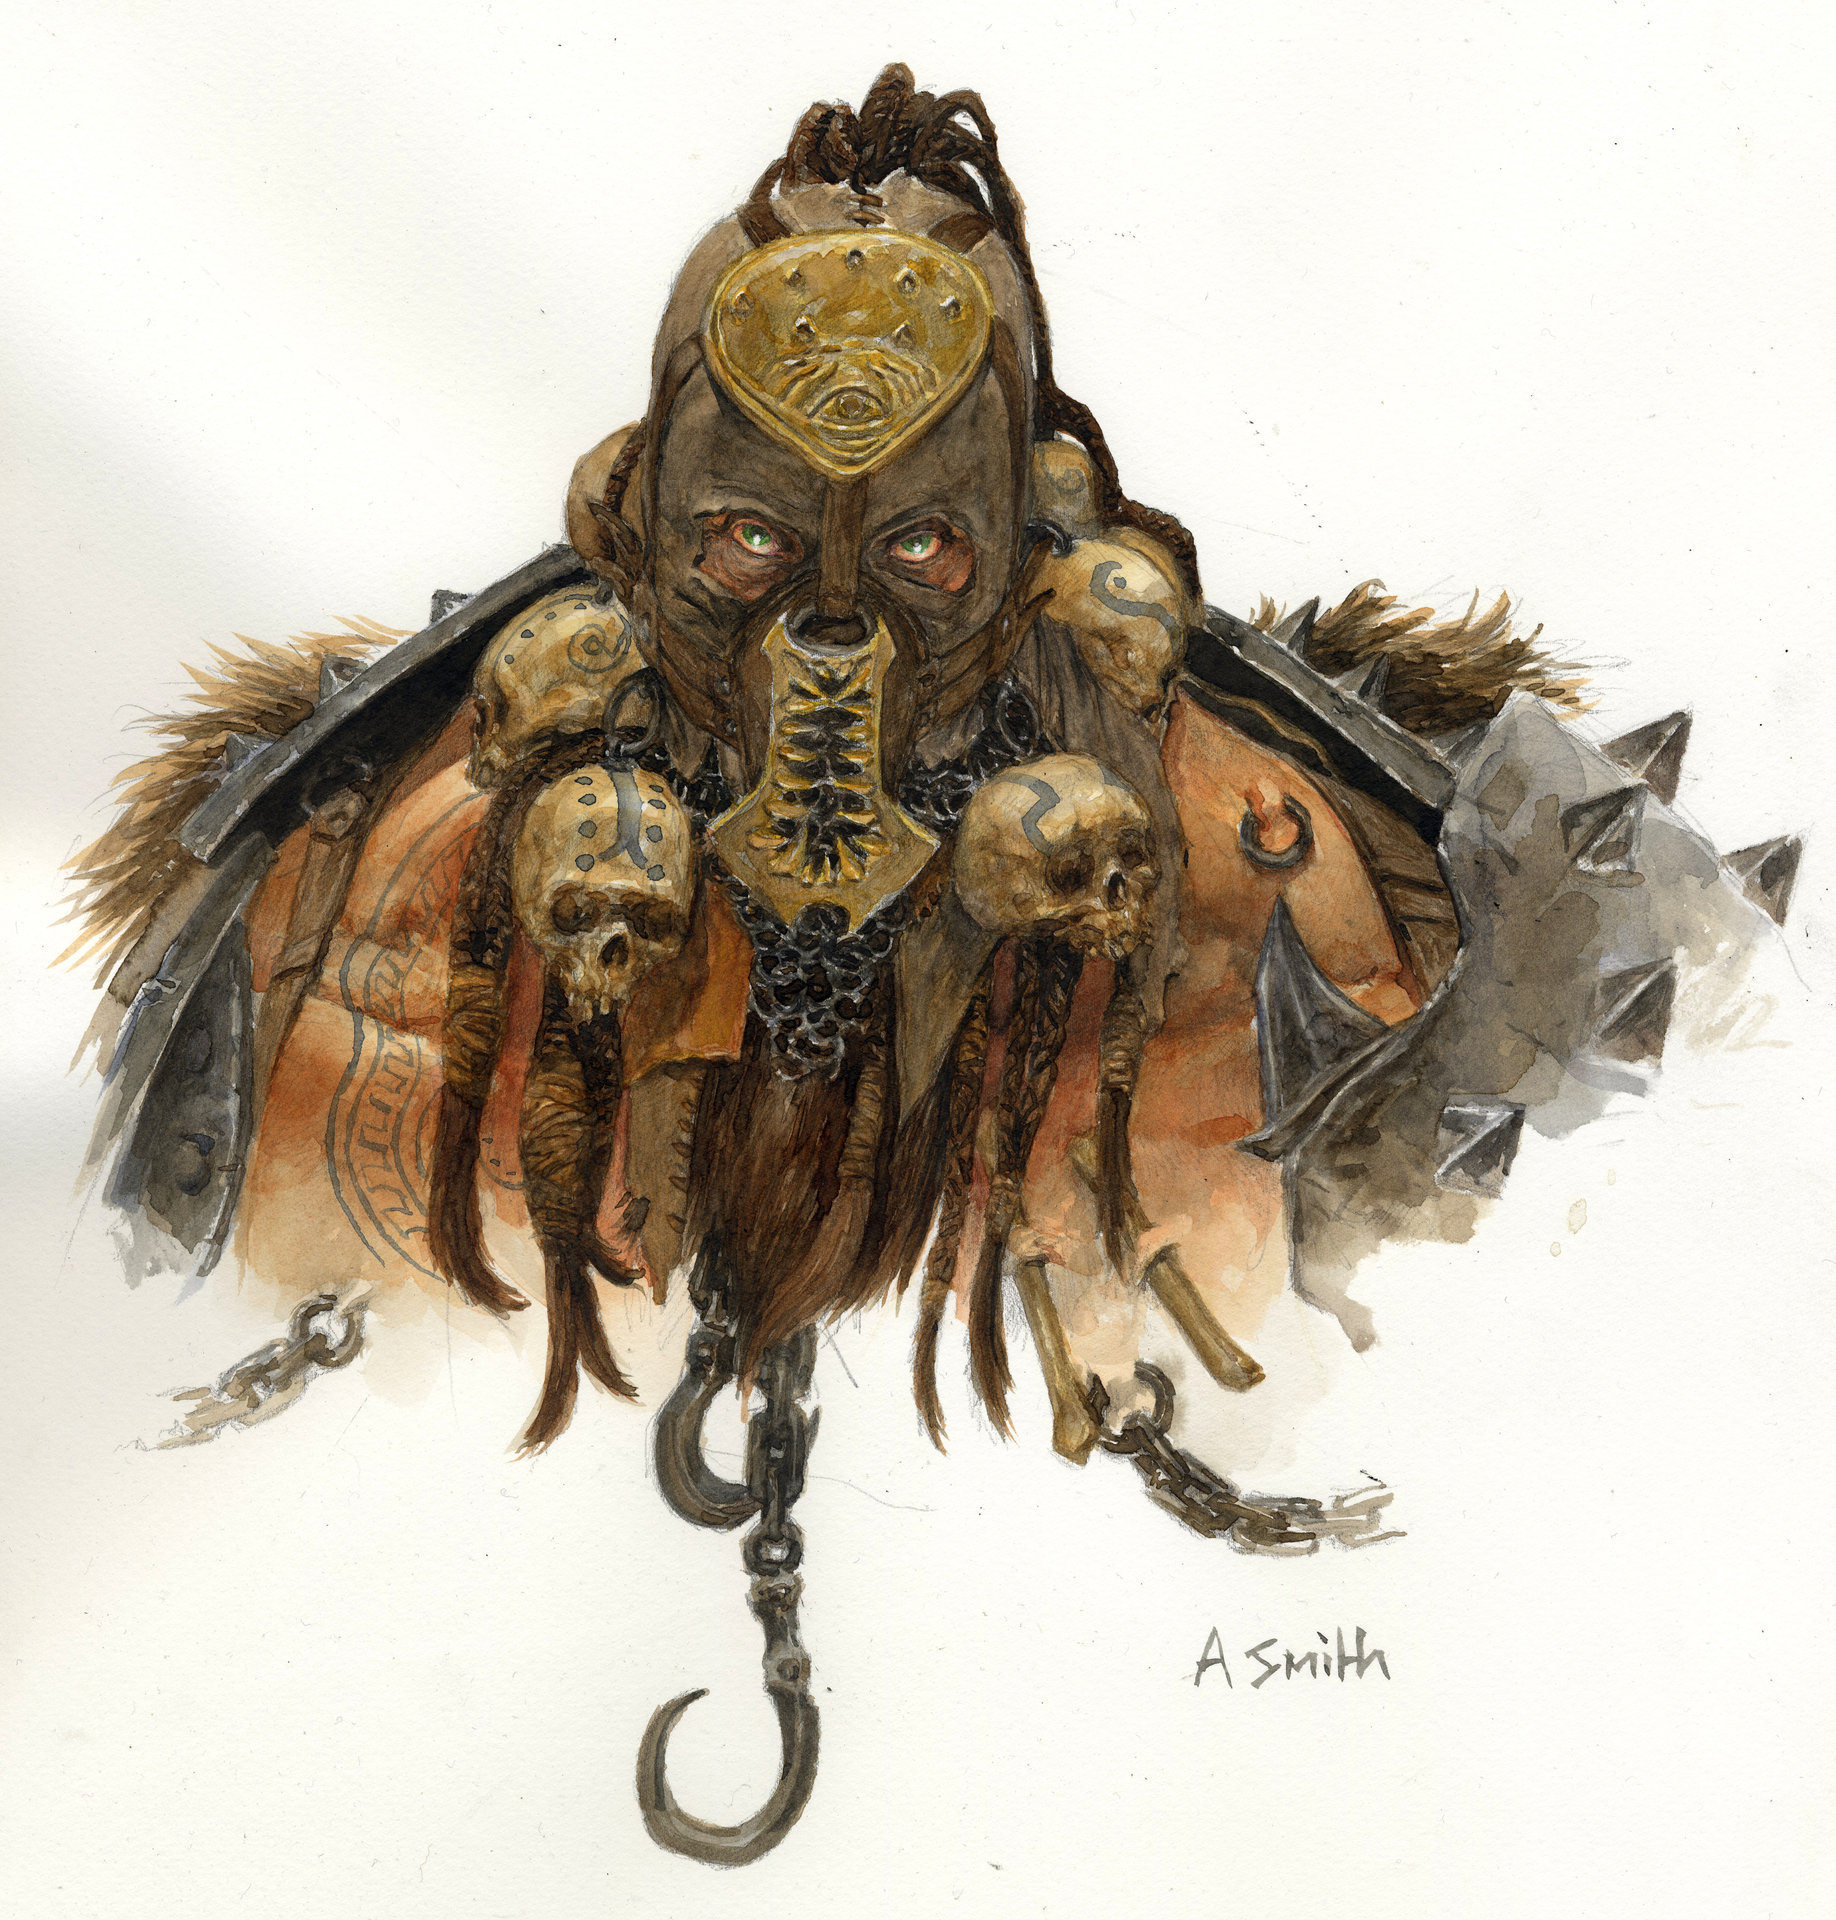 Adrian smith hate lord colour4